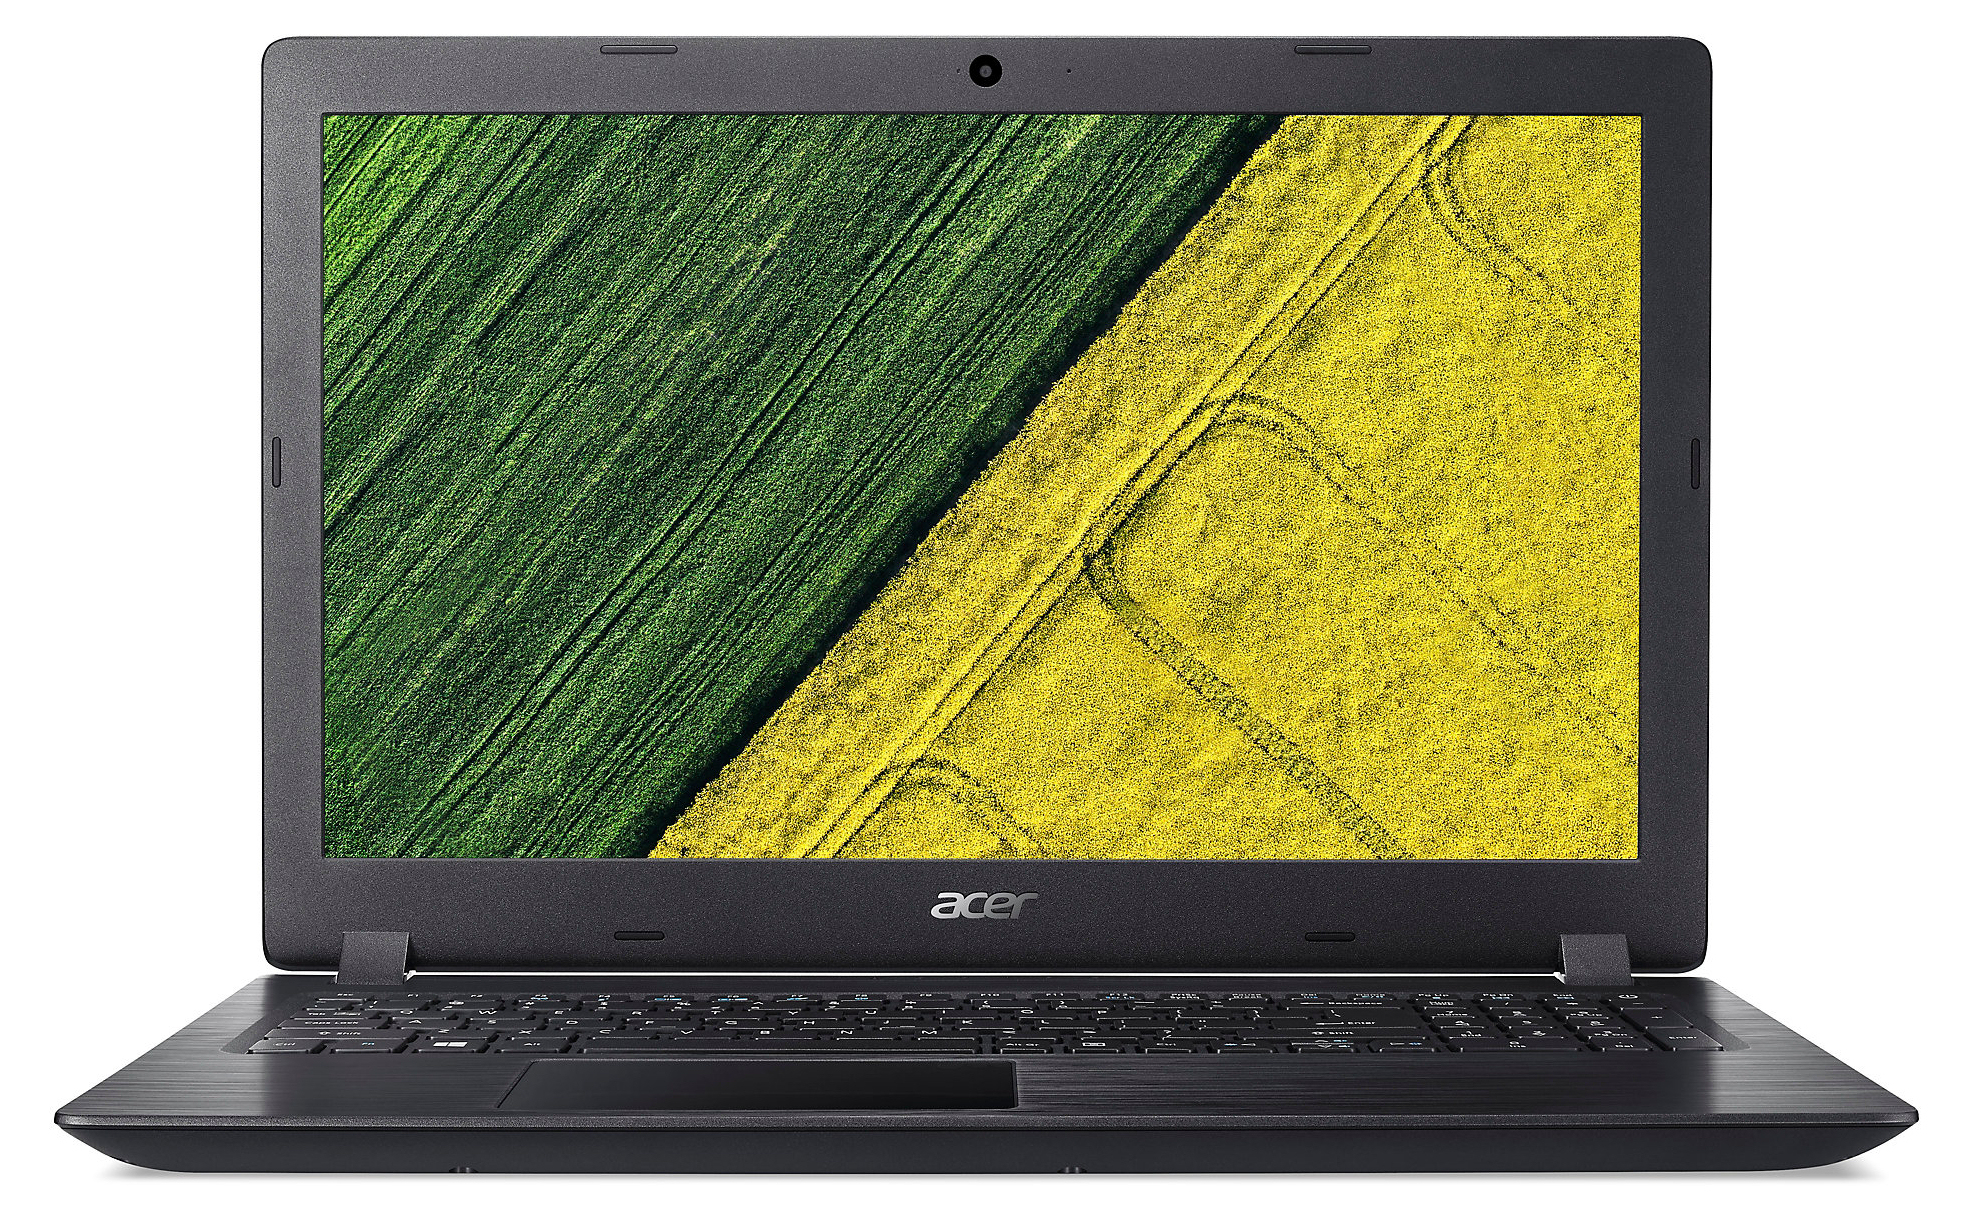 Acer Aspire 3 A315-21 (A6-9220, Radeon R4) Laptop Review ...